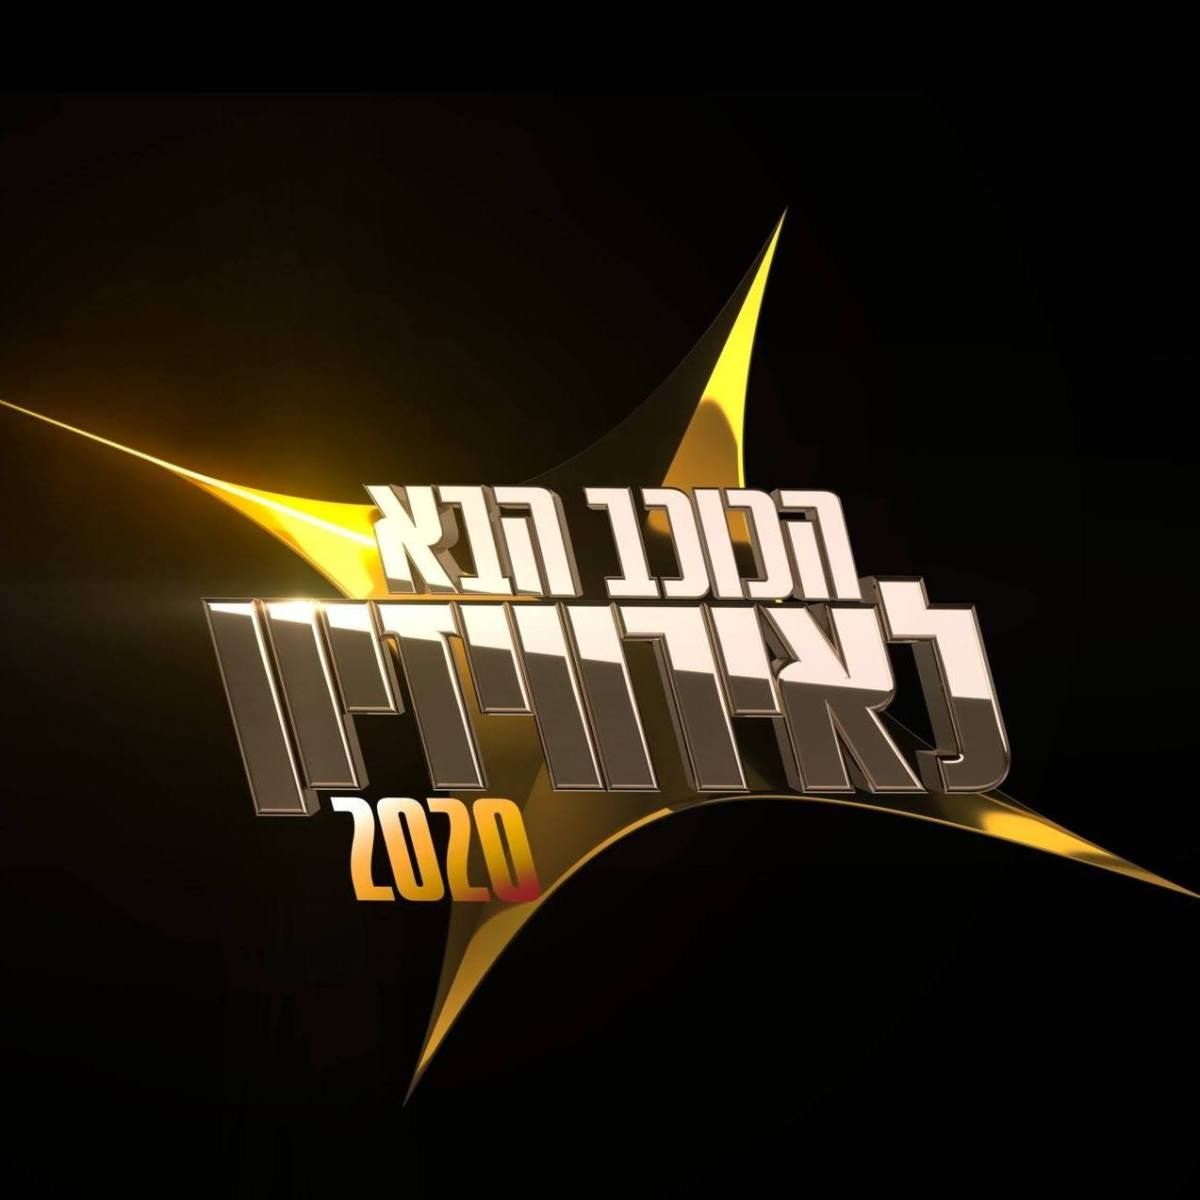 Israel: Eurovision 2020 act to be selected on February 4; New plans for Eurovision 2021